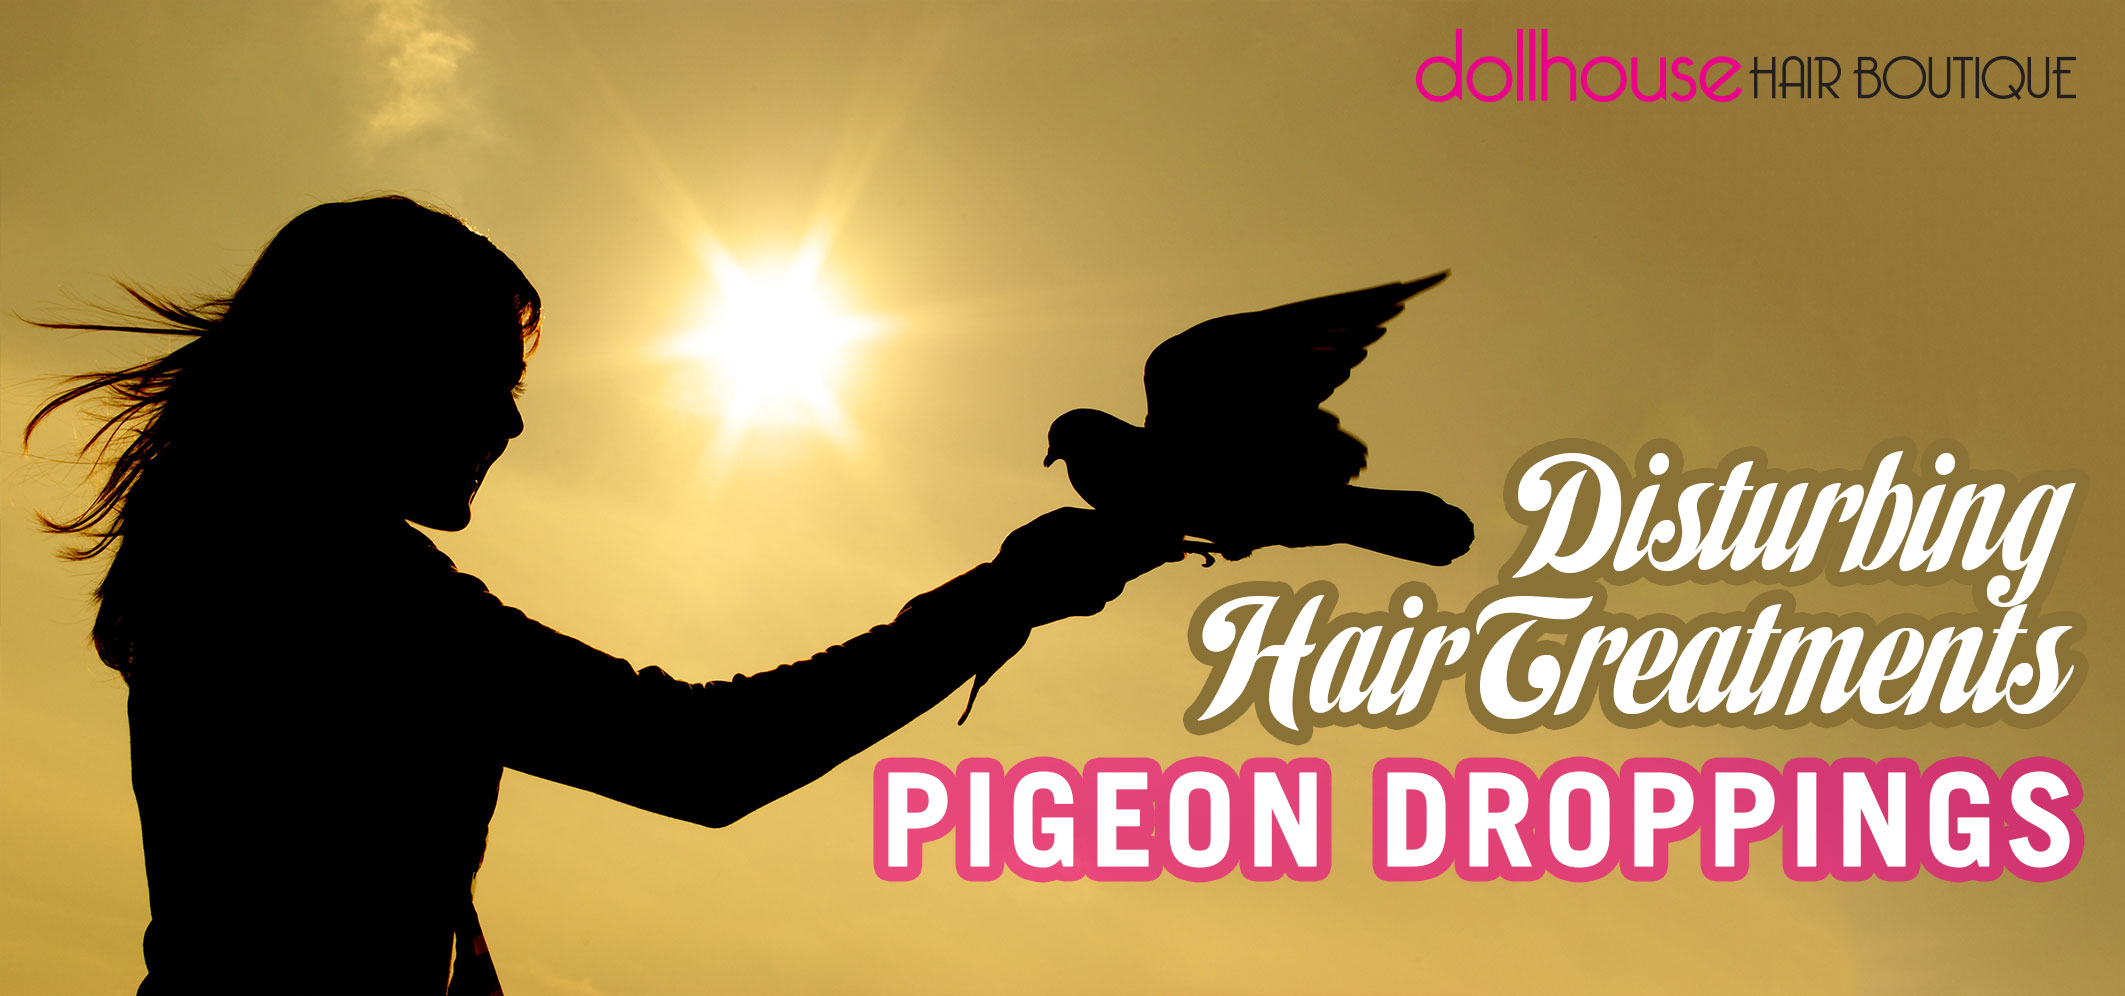 disturbing-hair-treatments-pigeon-droppings